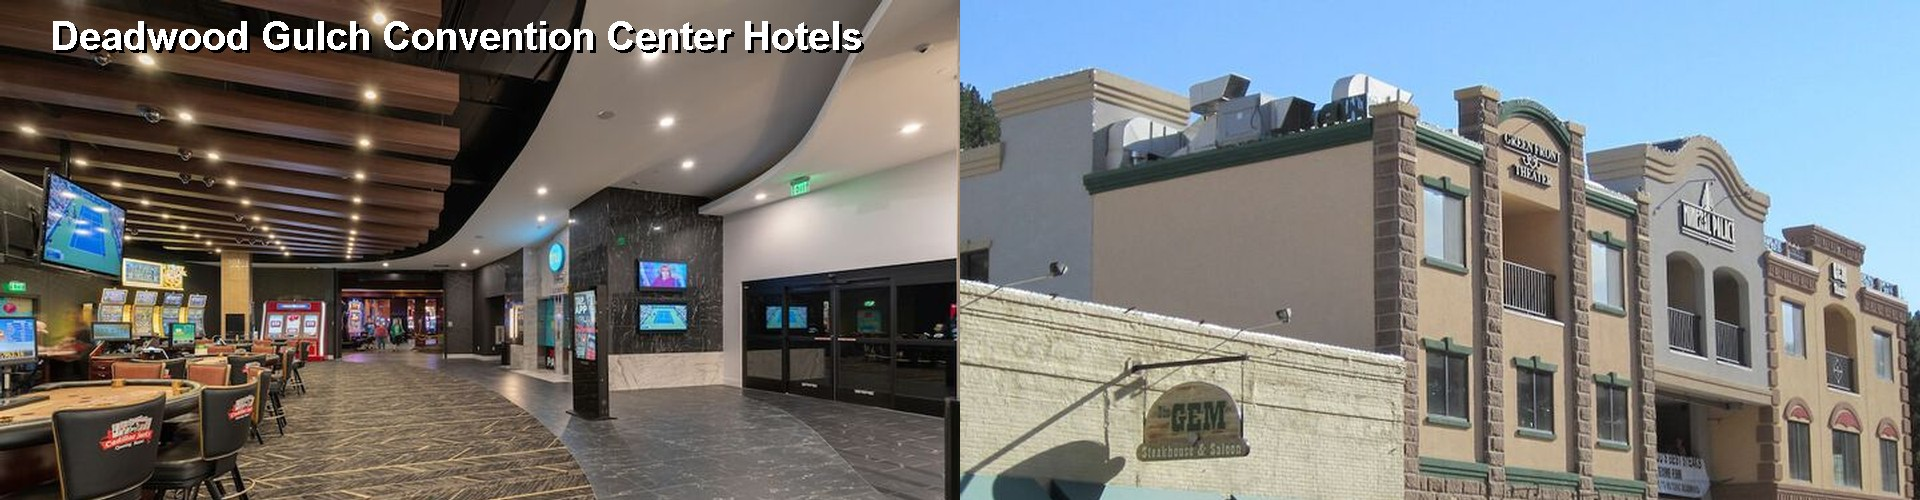 5 Best Hotels Near Deadwood Gulch Convention Center